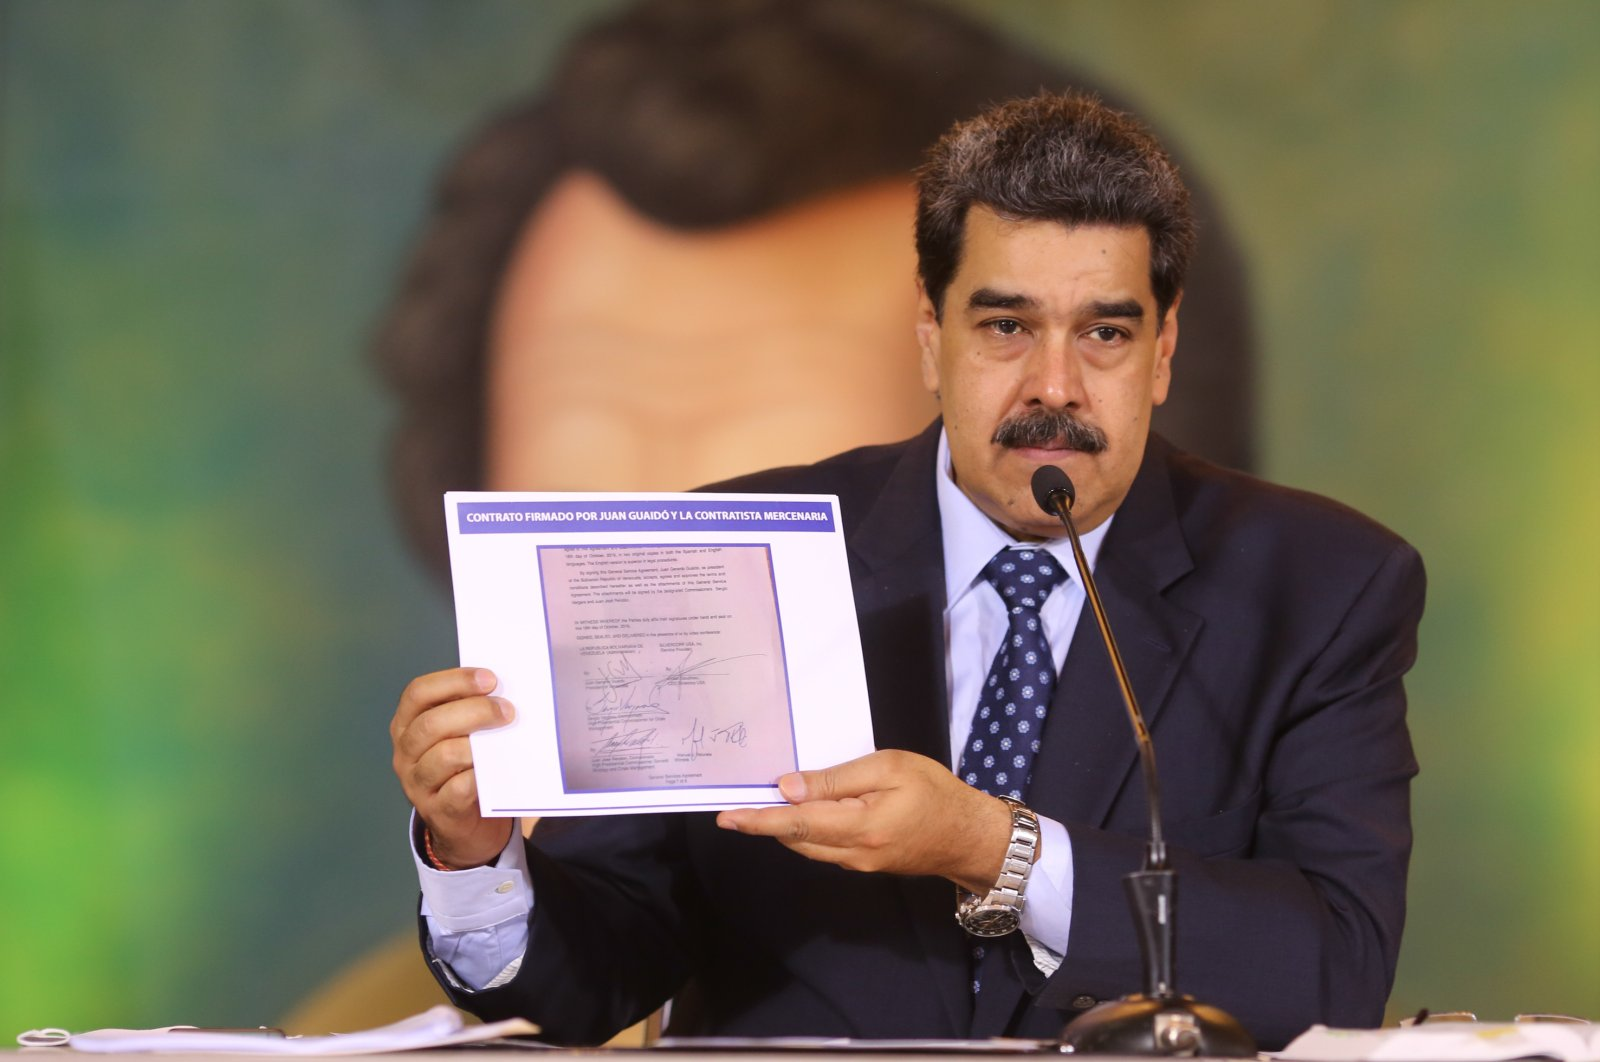 President Nicolas Maduro holds a copy of a written agreement that allegedly bears Guaido's signature as evidence during an online press conference, Caracas, May 6, 2020. (AP Photo)